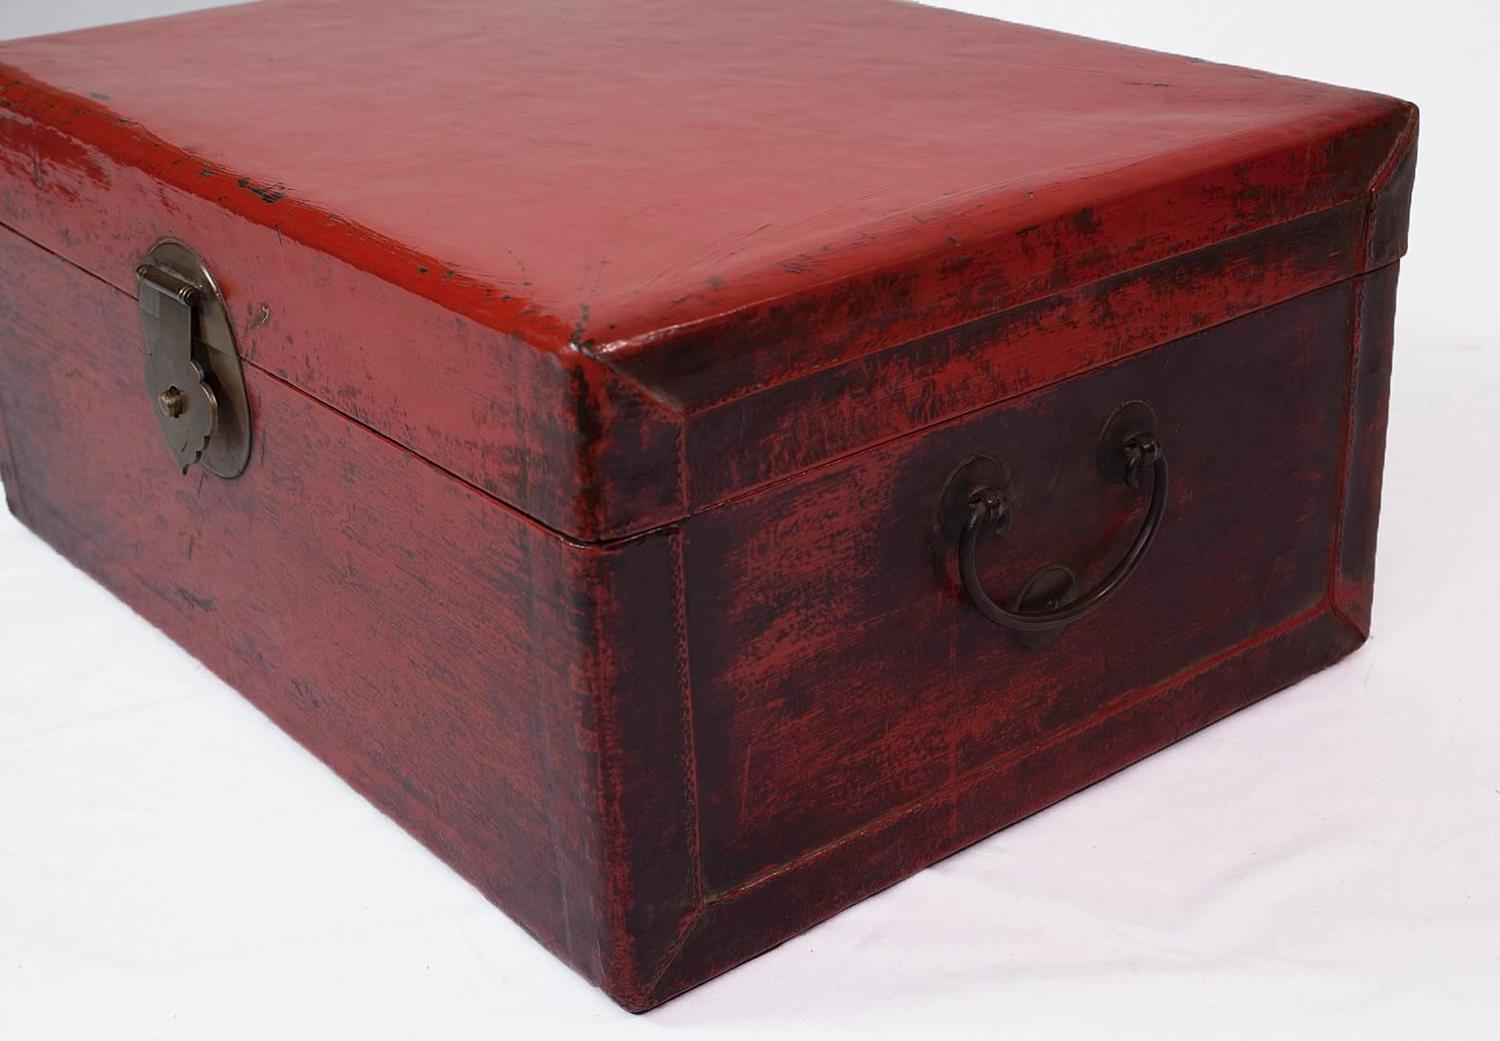 Chinese Red Lacquer Coffee Table Leather Trunk With Brass Hardware 19th Century For Sale At 1stdibs